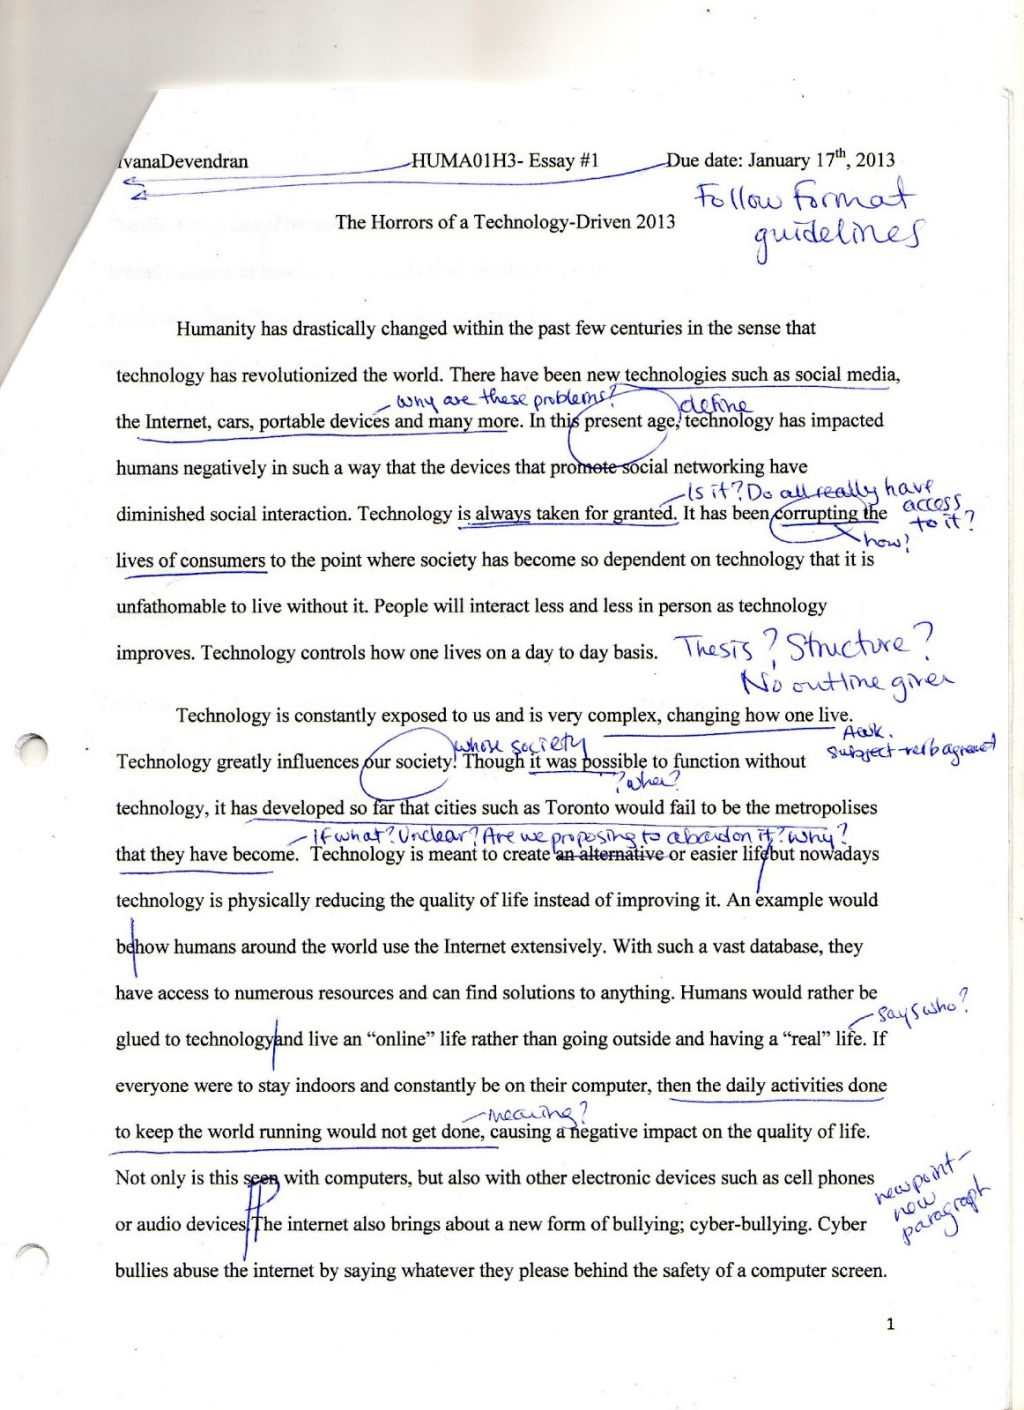 005 Essay Topics Music Img008 What Should You Avoid In Writingearch Paper Humanities Appreciation Questions Classical History Persuasive20 1024x1410 Persuasive About Awful Research Writing Full